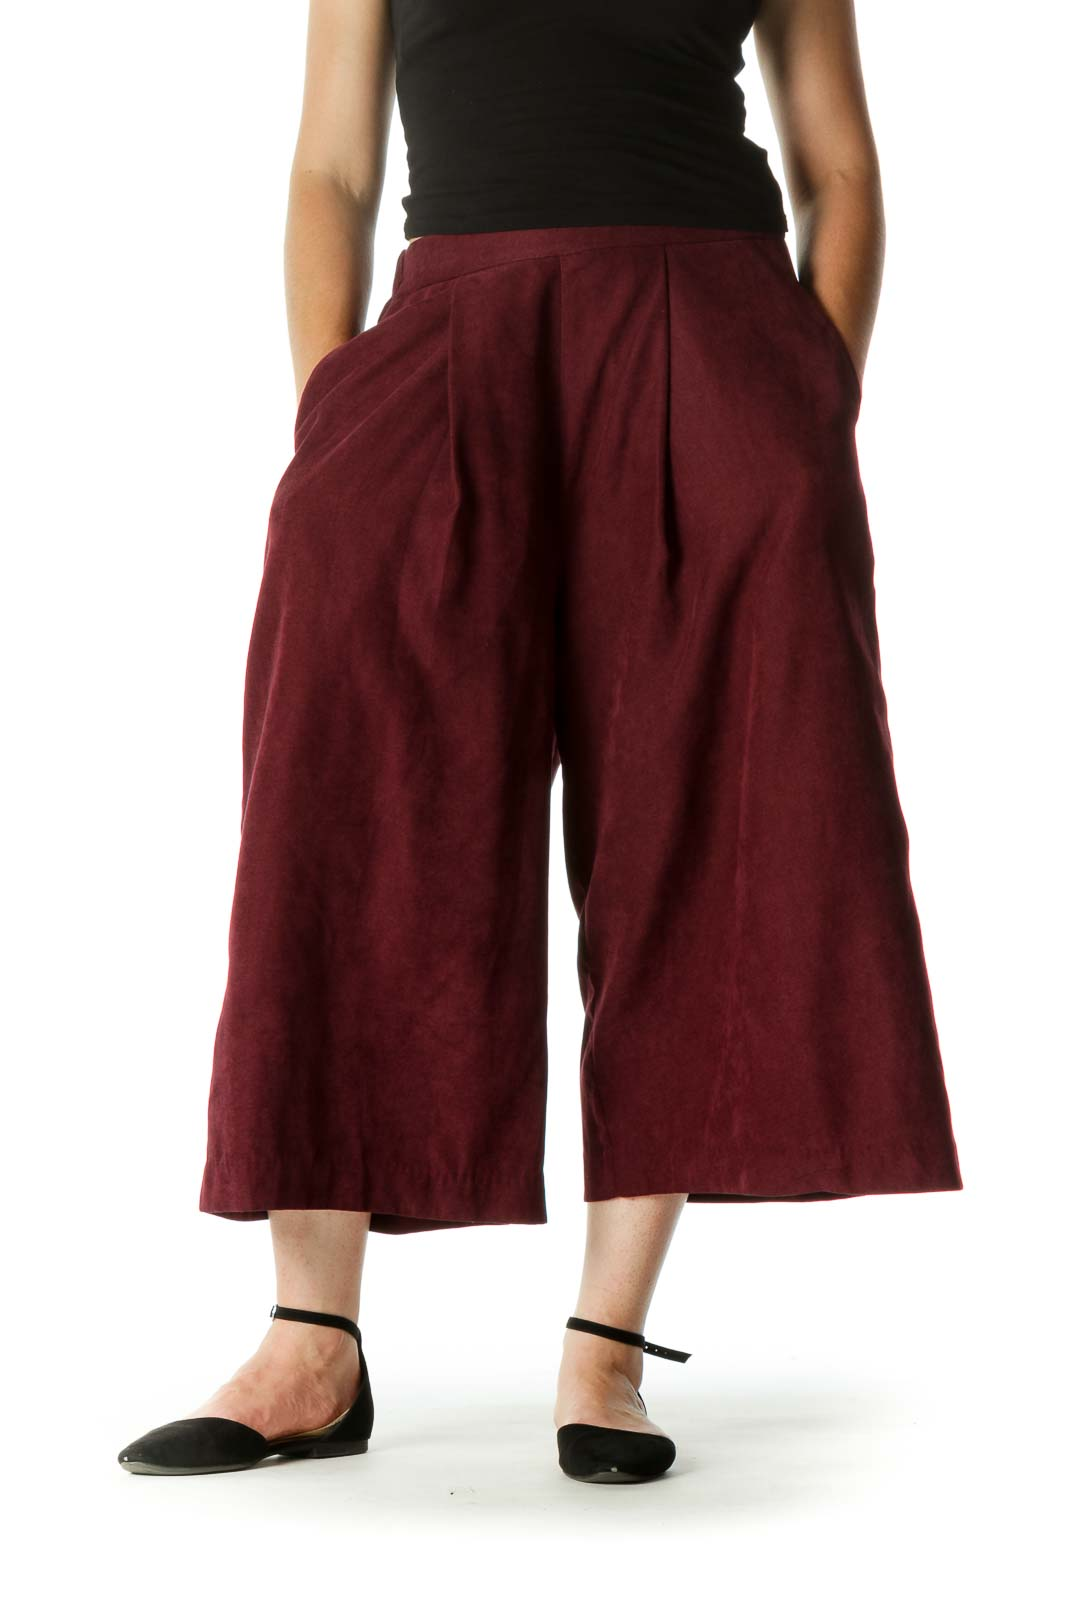 Burgundy Pocketed Textured Super High-Waist Culottes Pants Front